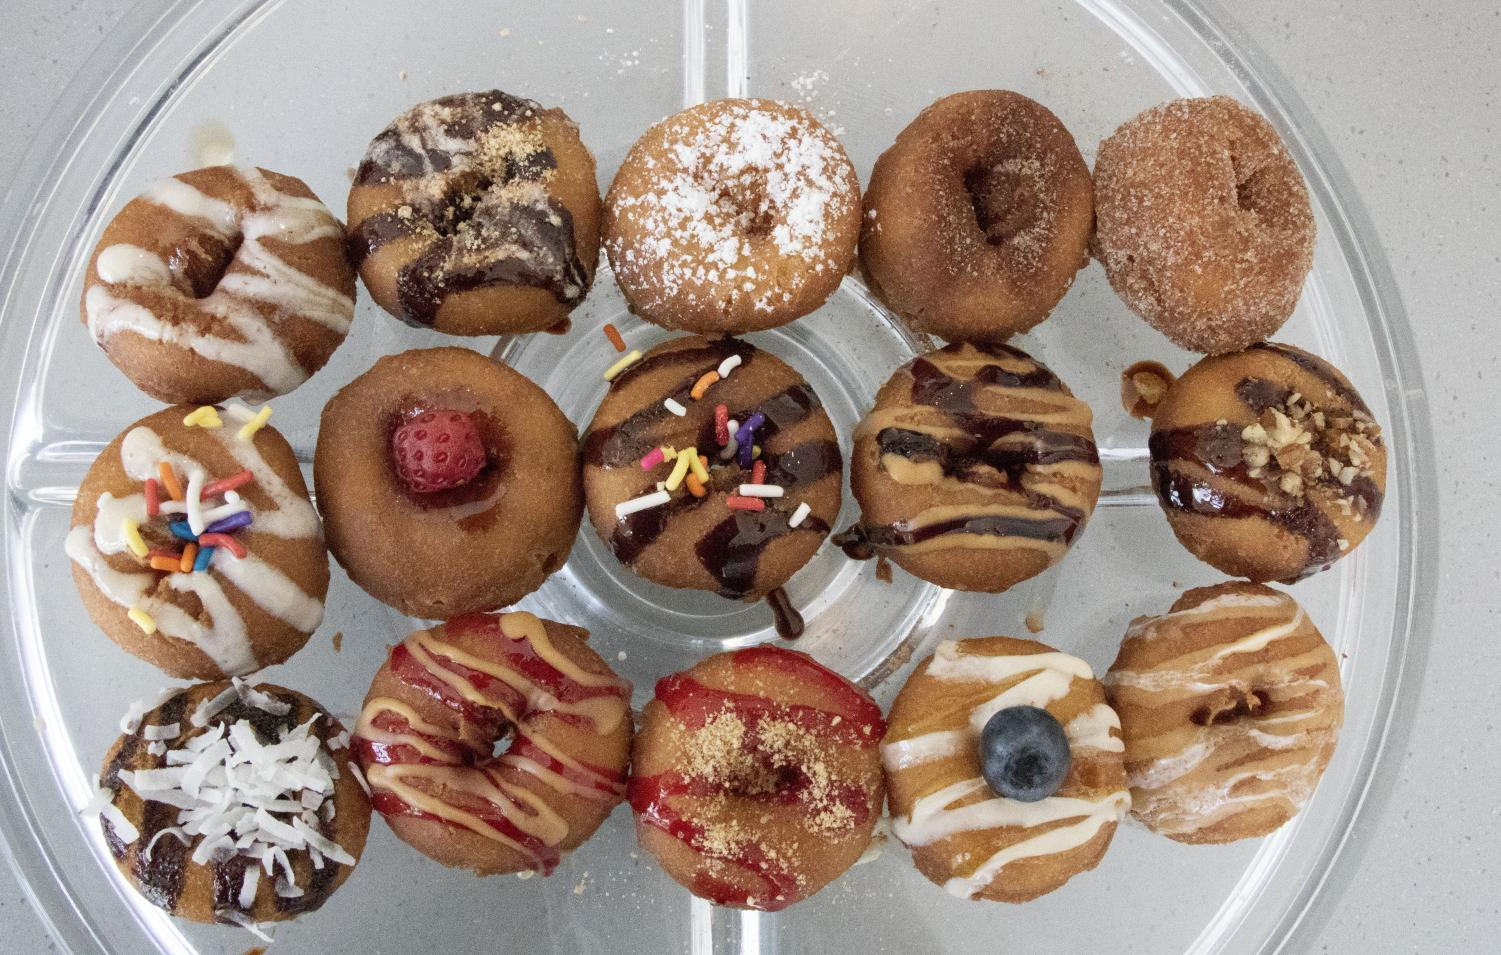 Dapper Doughnut's website classifies its doughnuts as